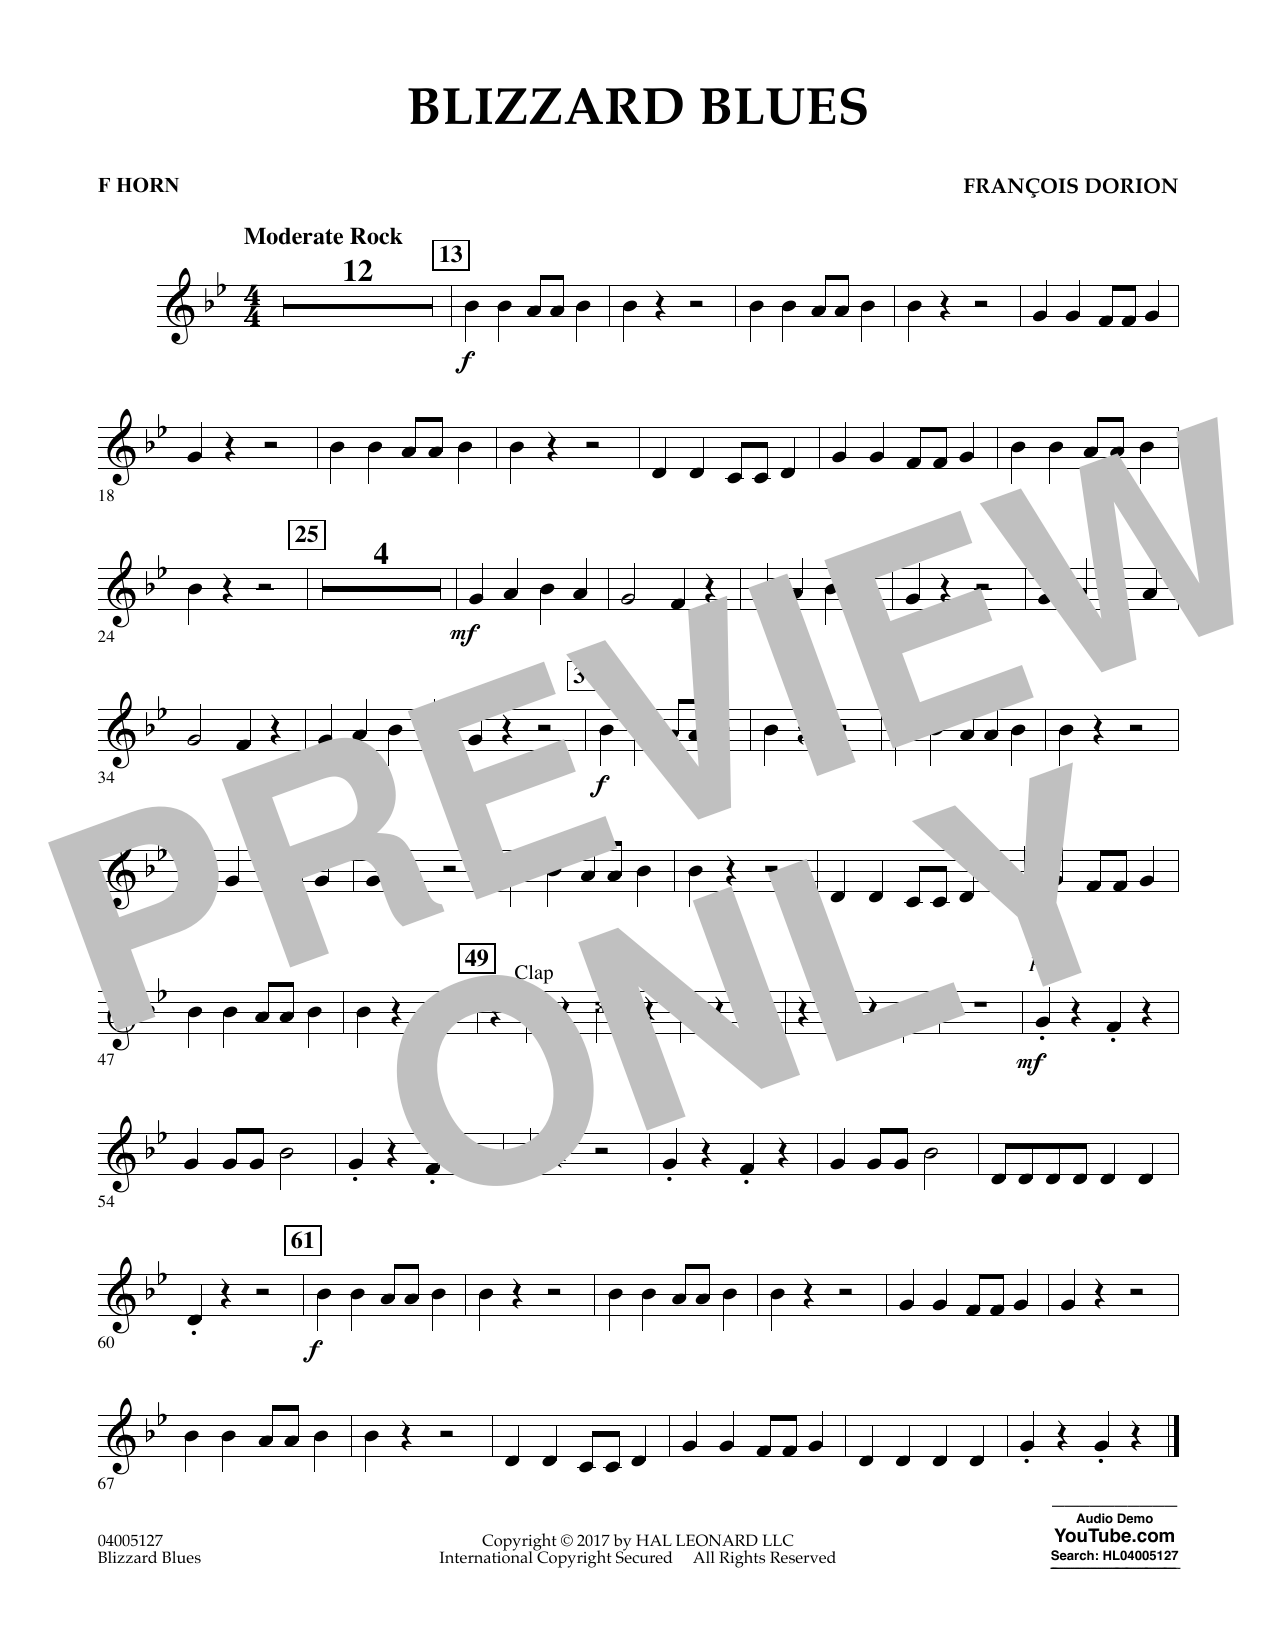 Francois Dorion Blizzard Blues - F Horn sheet music notes and chords. Download Printable PDF.